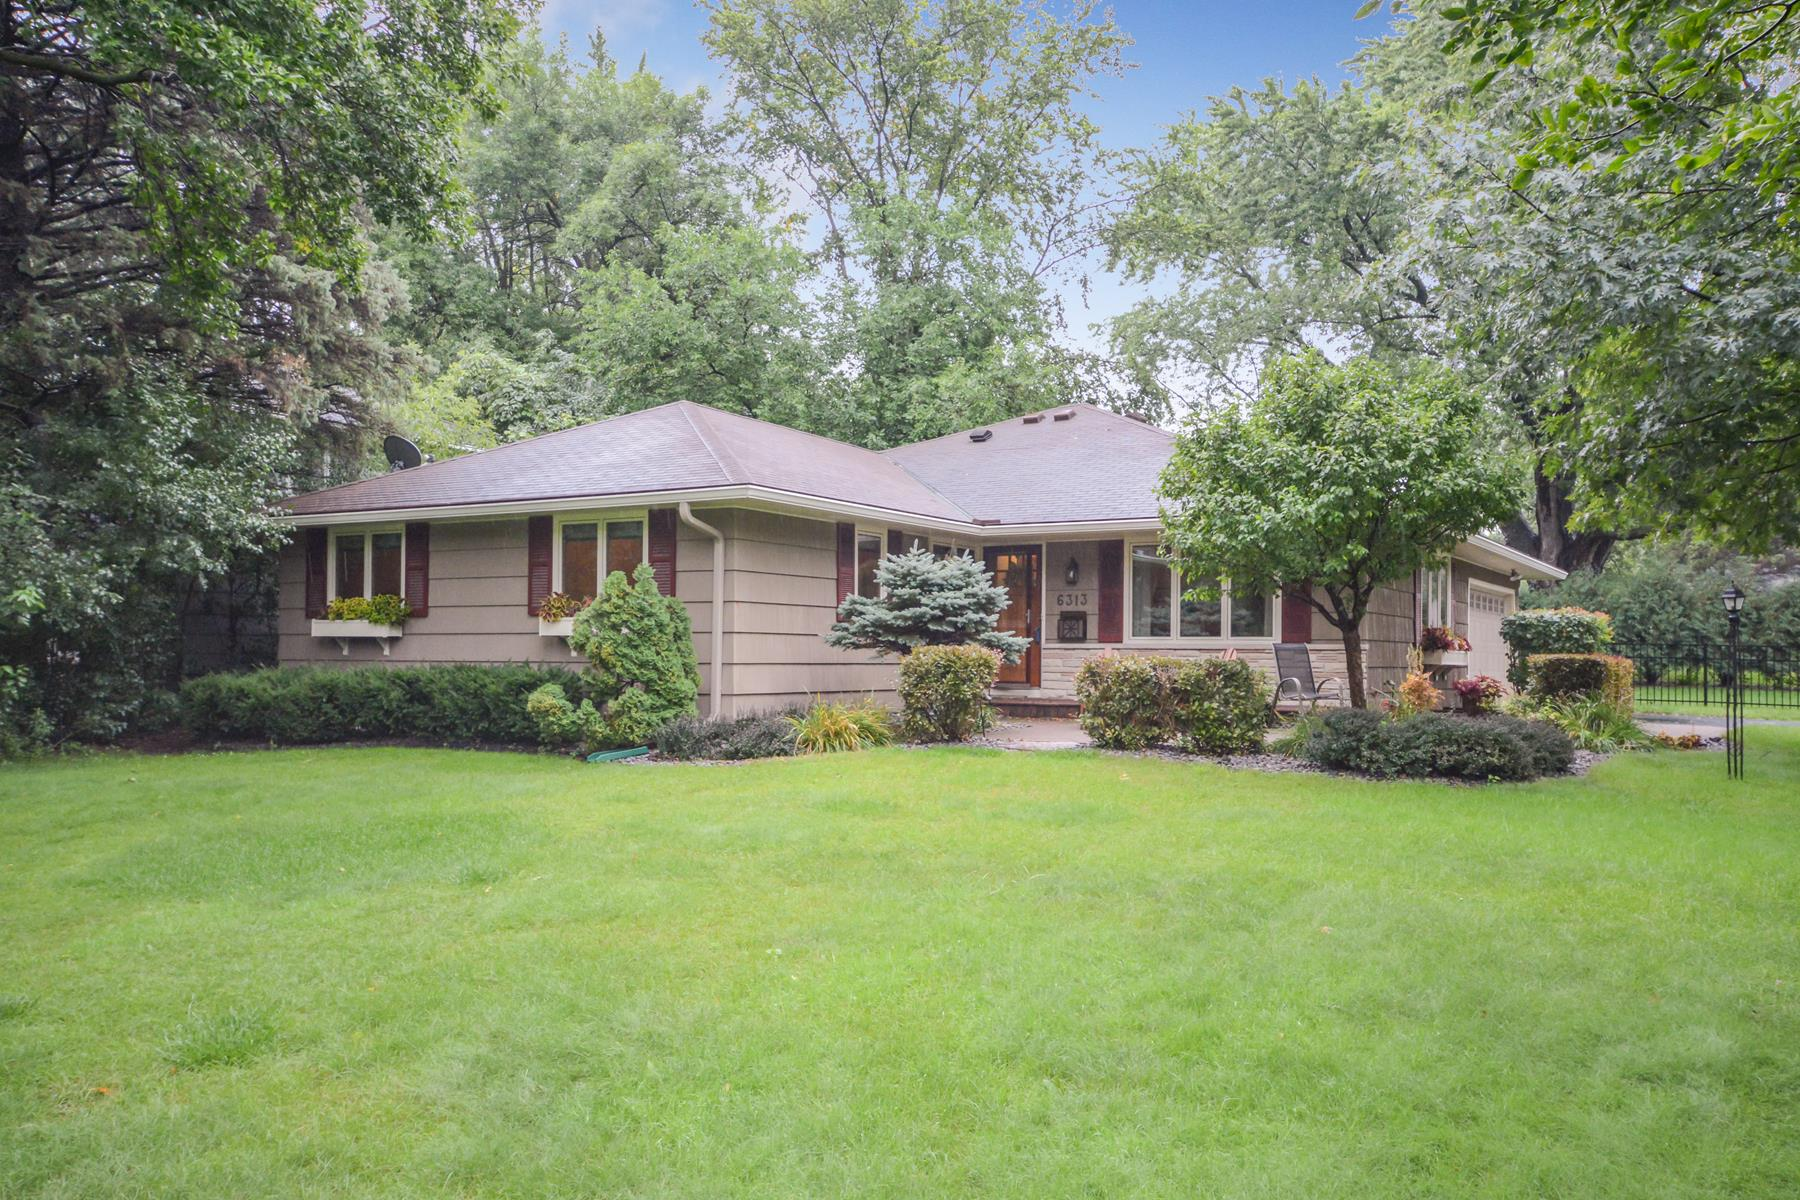 Single Family Home for Sale at 6313 Maloney Avenue Edina, Minnesota, 55343 United States